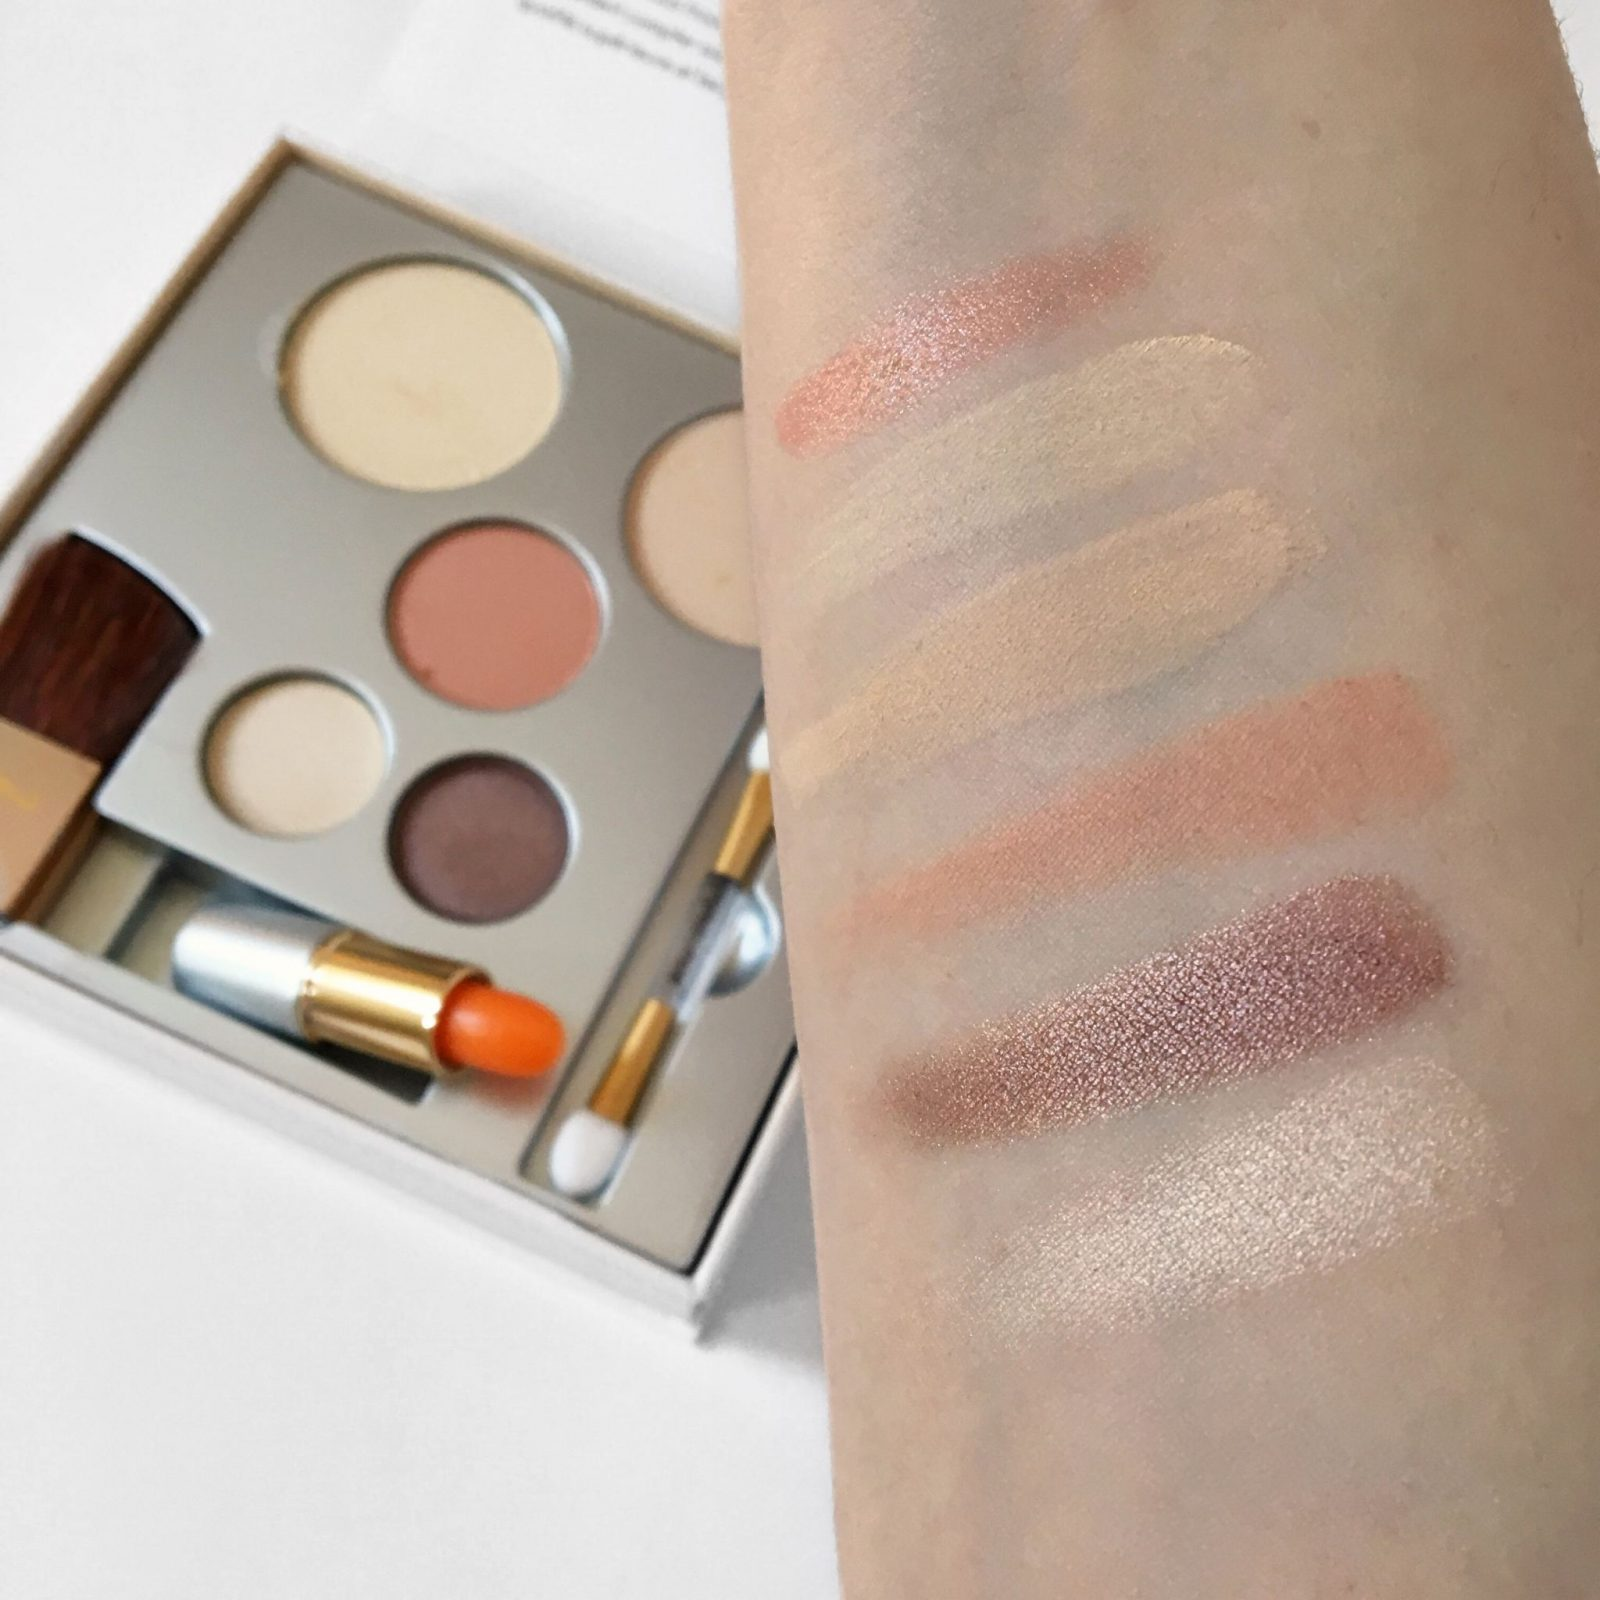 Jane Iredale #PureSimpleYou Makeup Kit Review